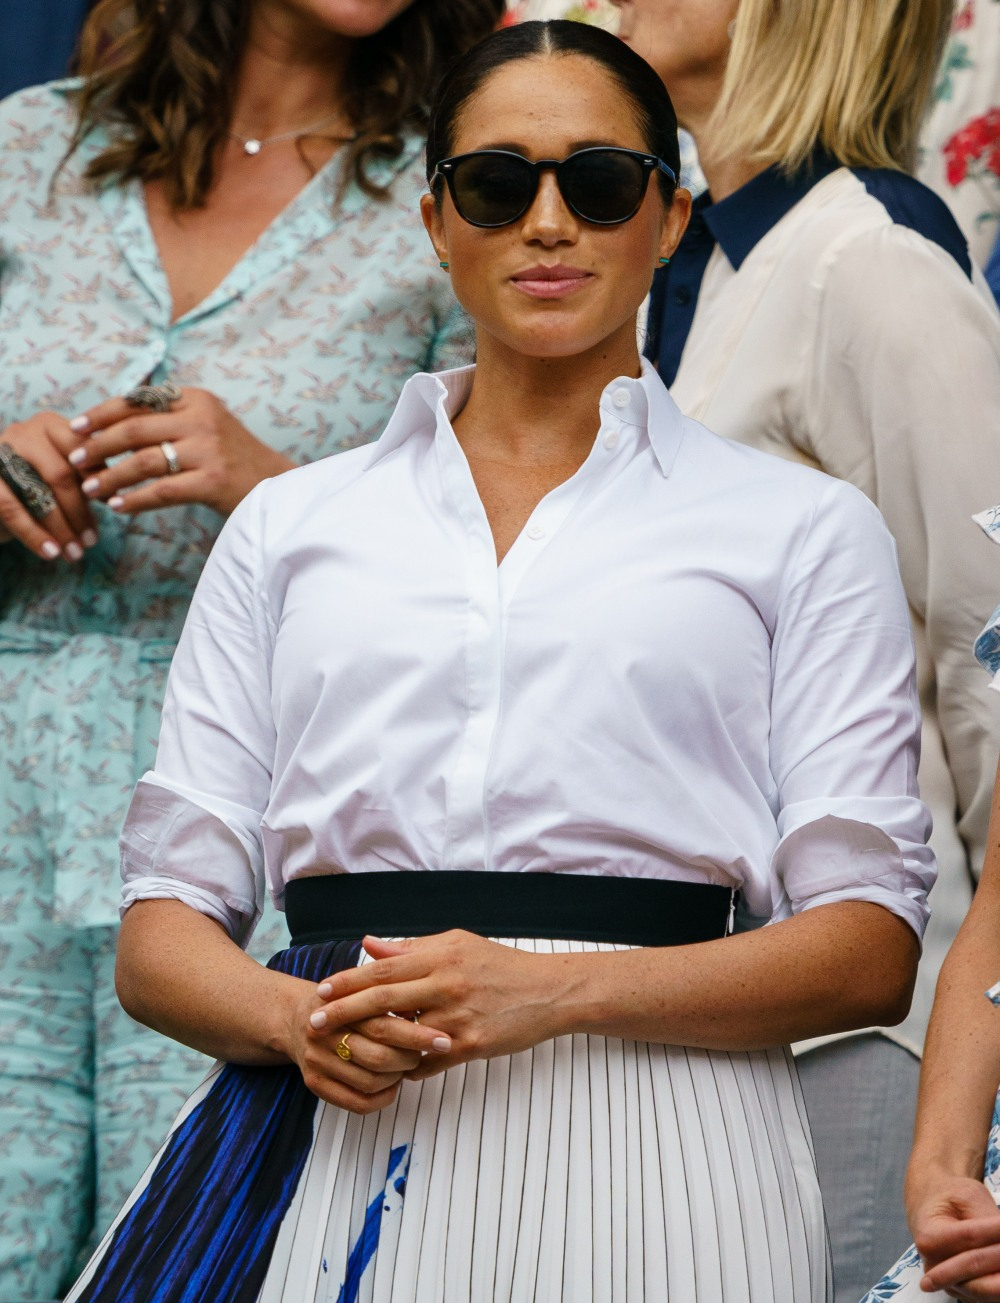 Will Duchess Meghan end up suing Piers Morgan for his asinine harassment?